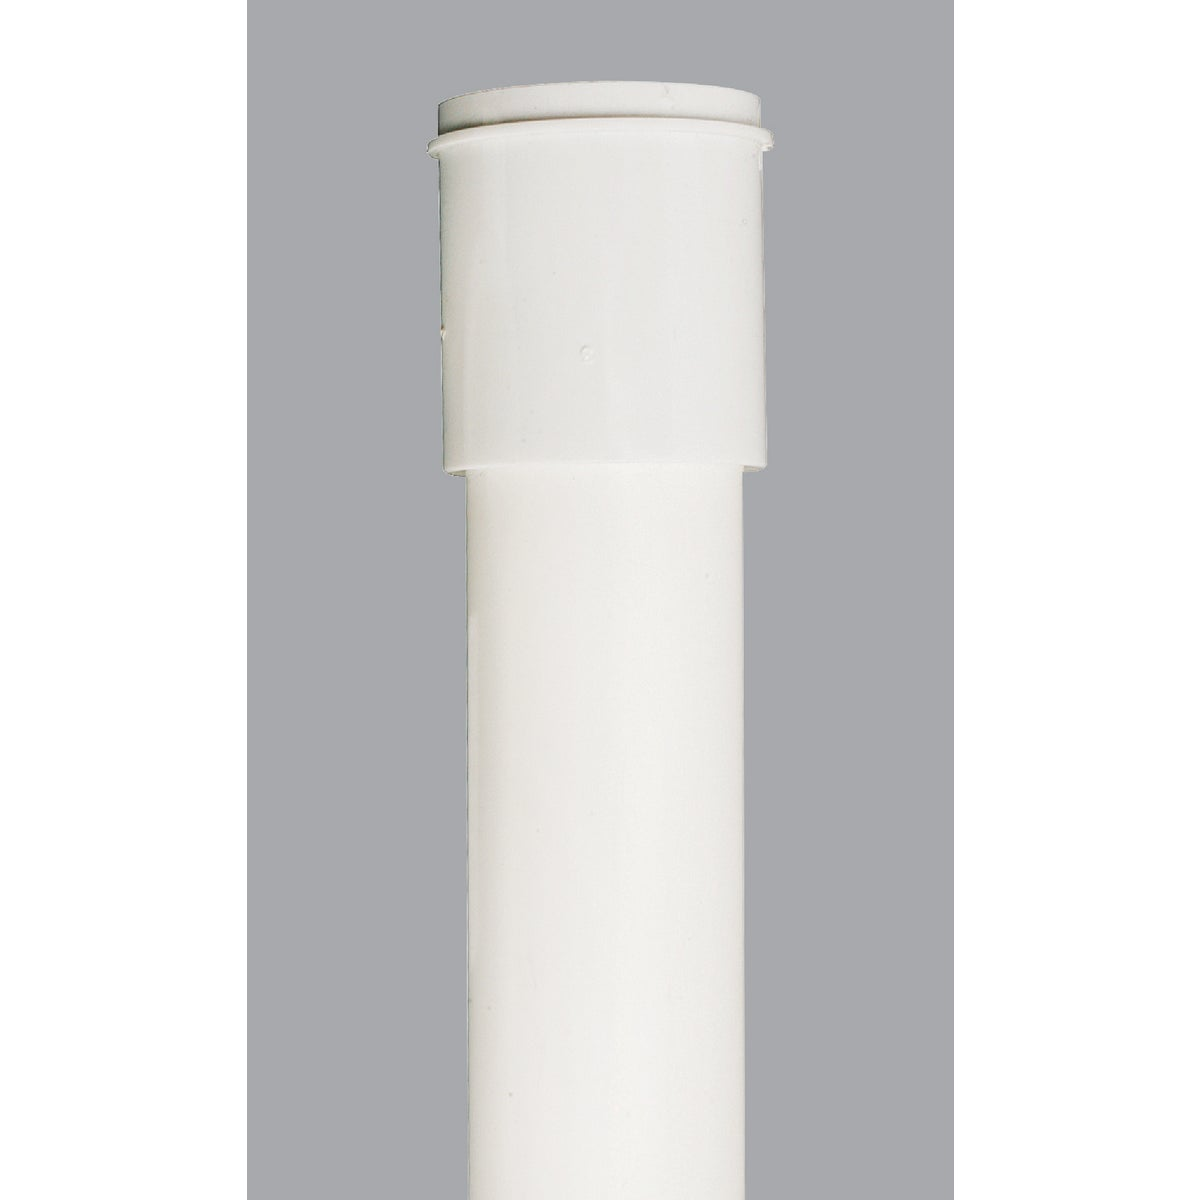 1-1/2X6 SOLV EXT TUBE - 20-6WK by Plumb Pak/keeney Mfg